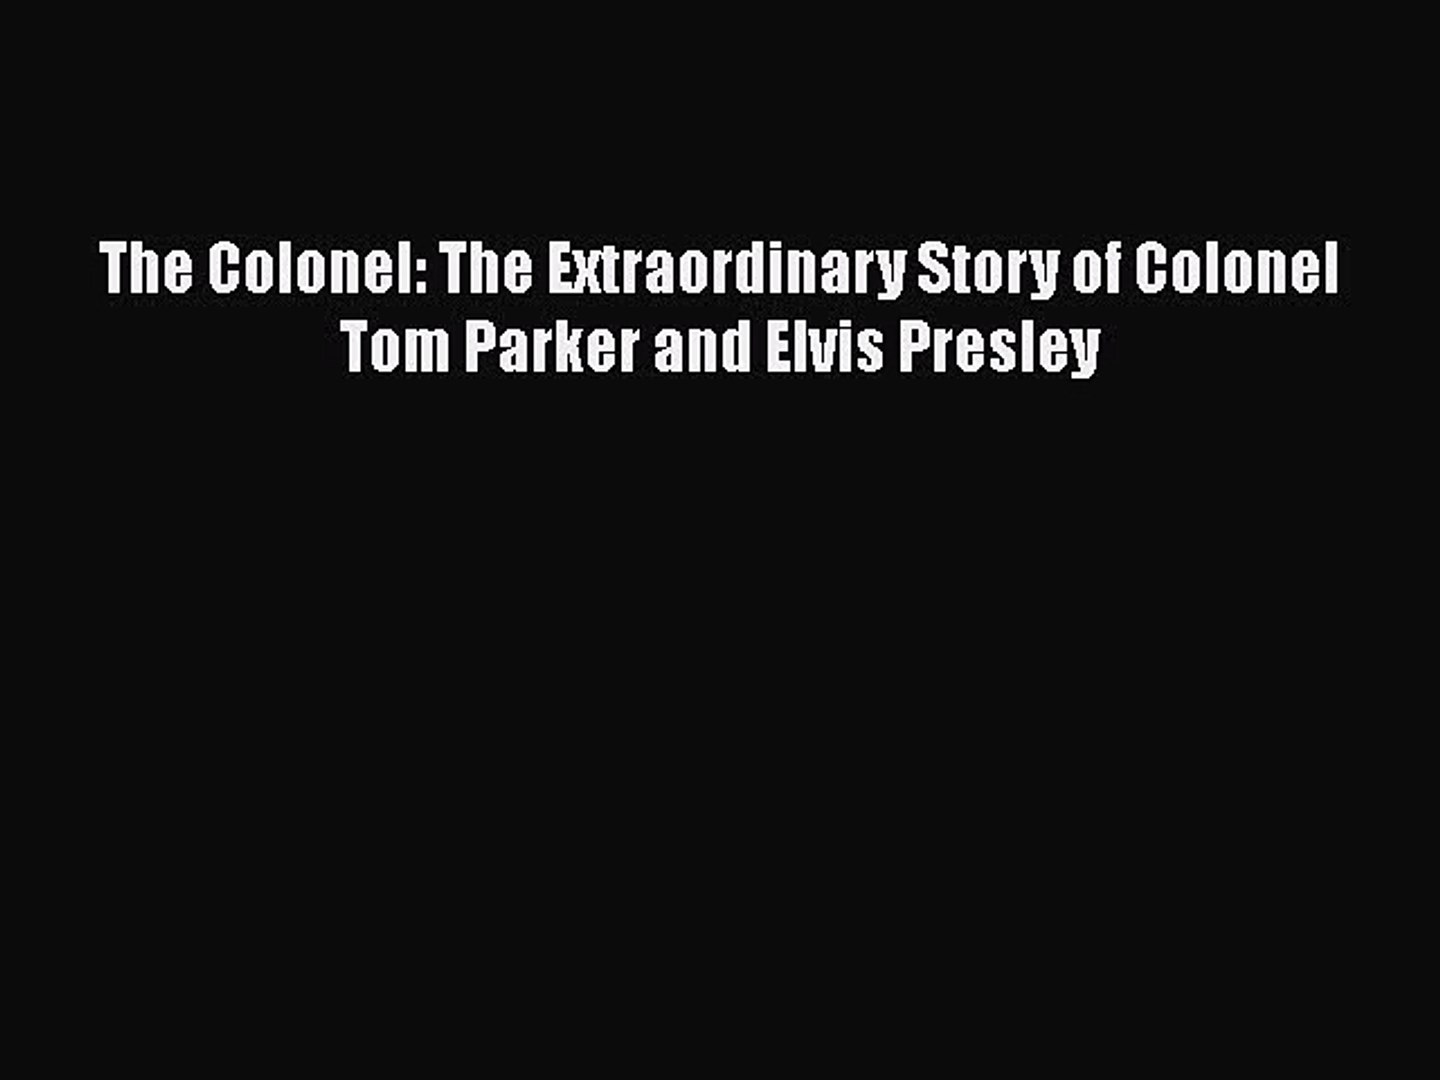 Read The Colonel: The Extraordinary Story of Colonel Tom Parker and Elvis Presley Ebook Free